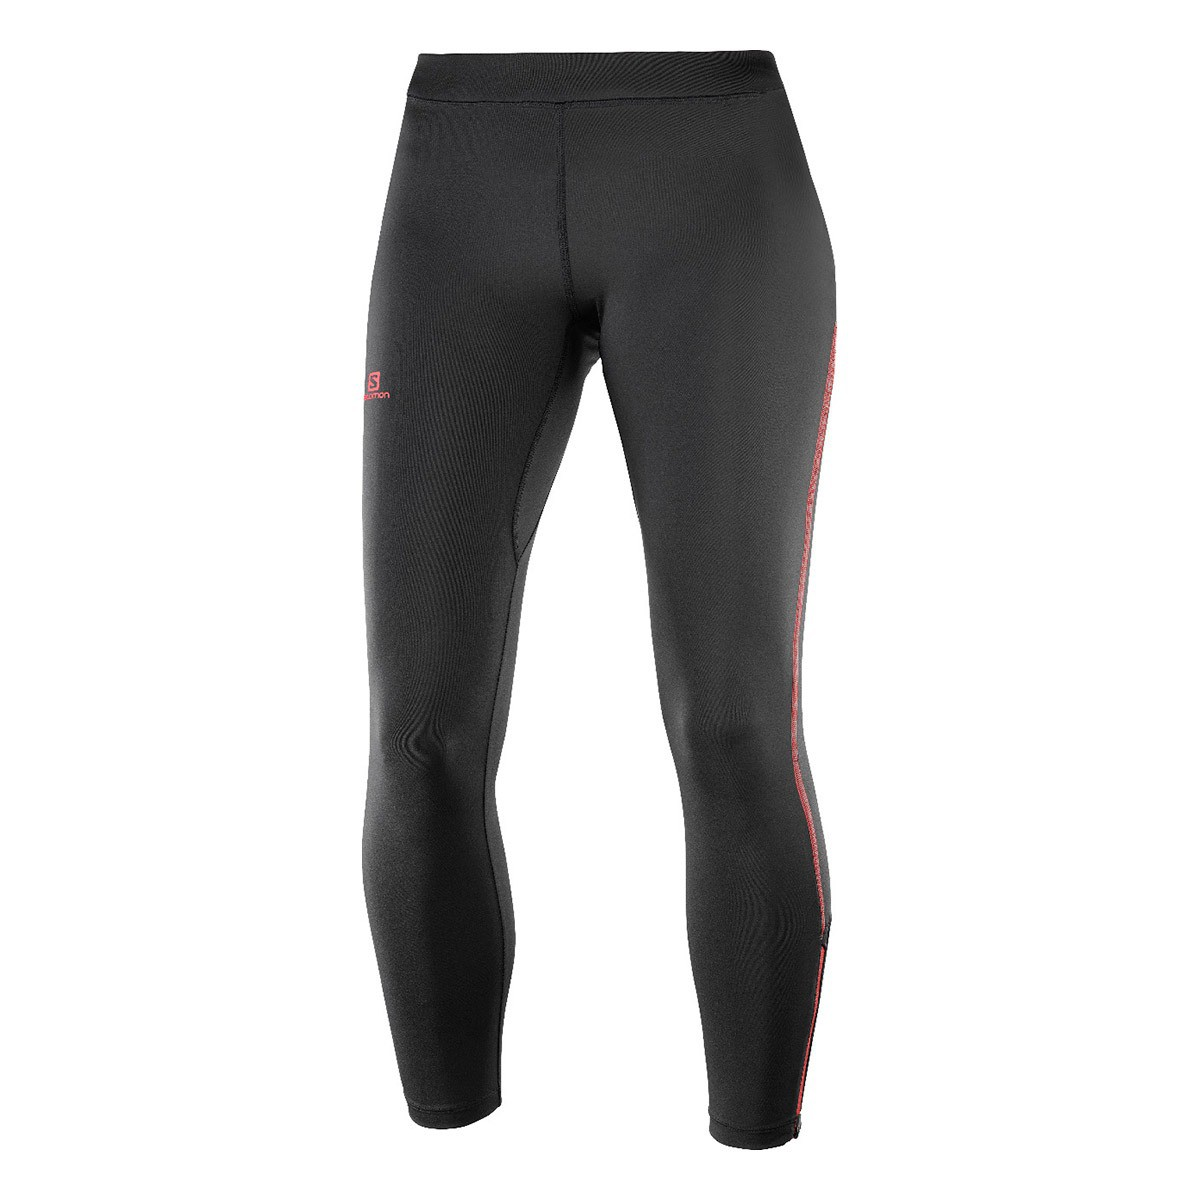 Calça  Salomon de Compressão Sense Tight II F